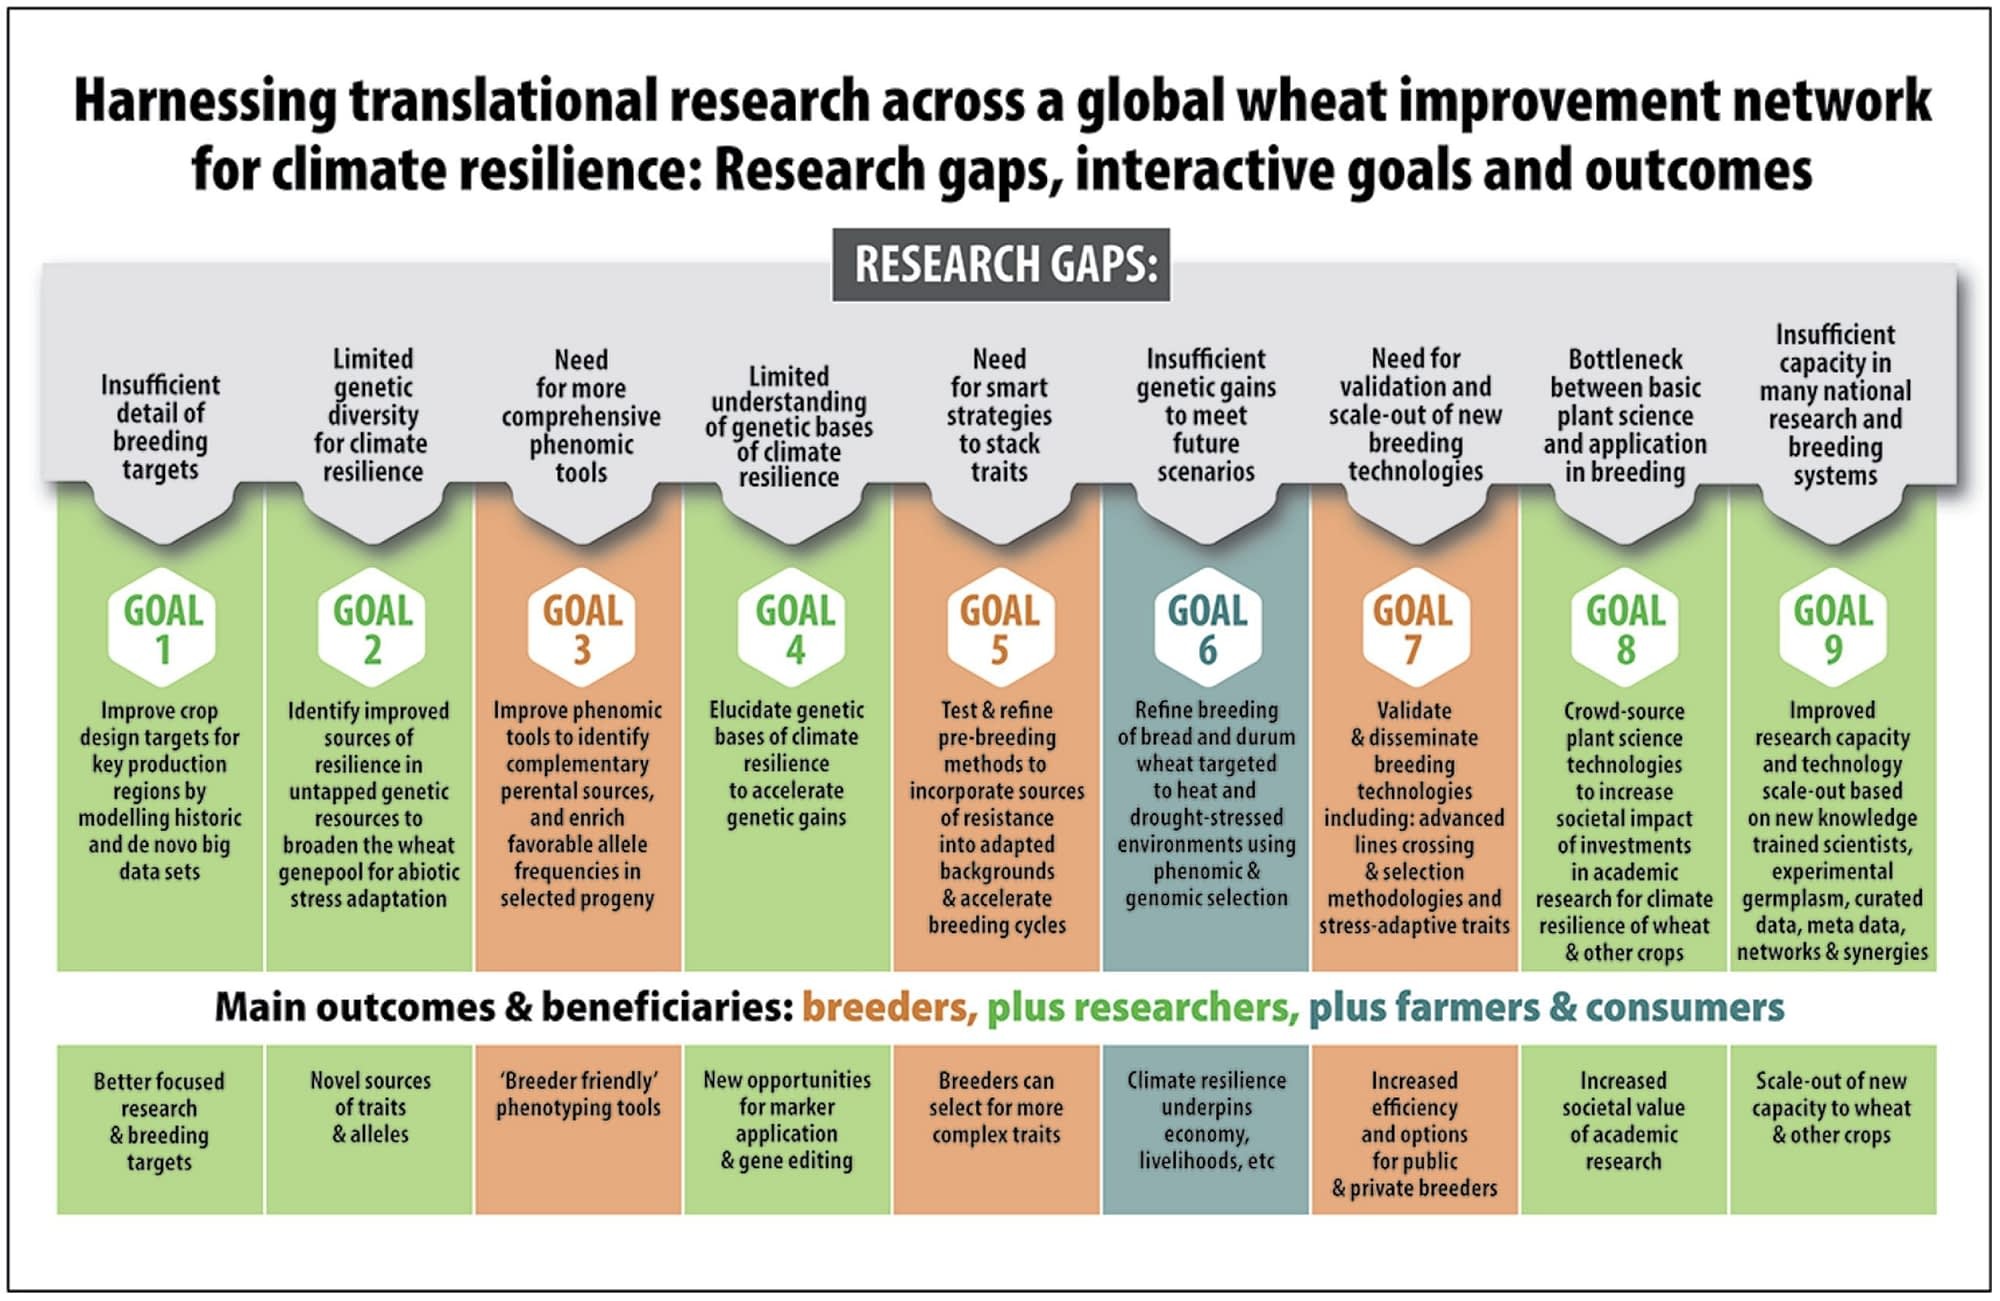 Harnessing research across a global wheat improvement network for climate resilience: research gaps, interactive goals, and outcomes.